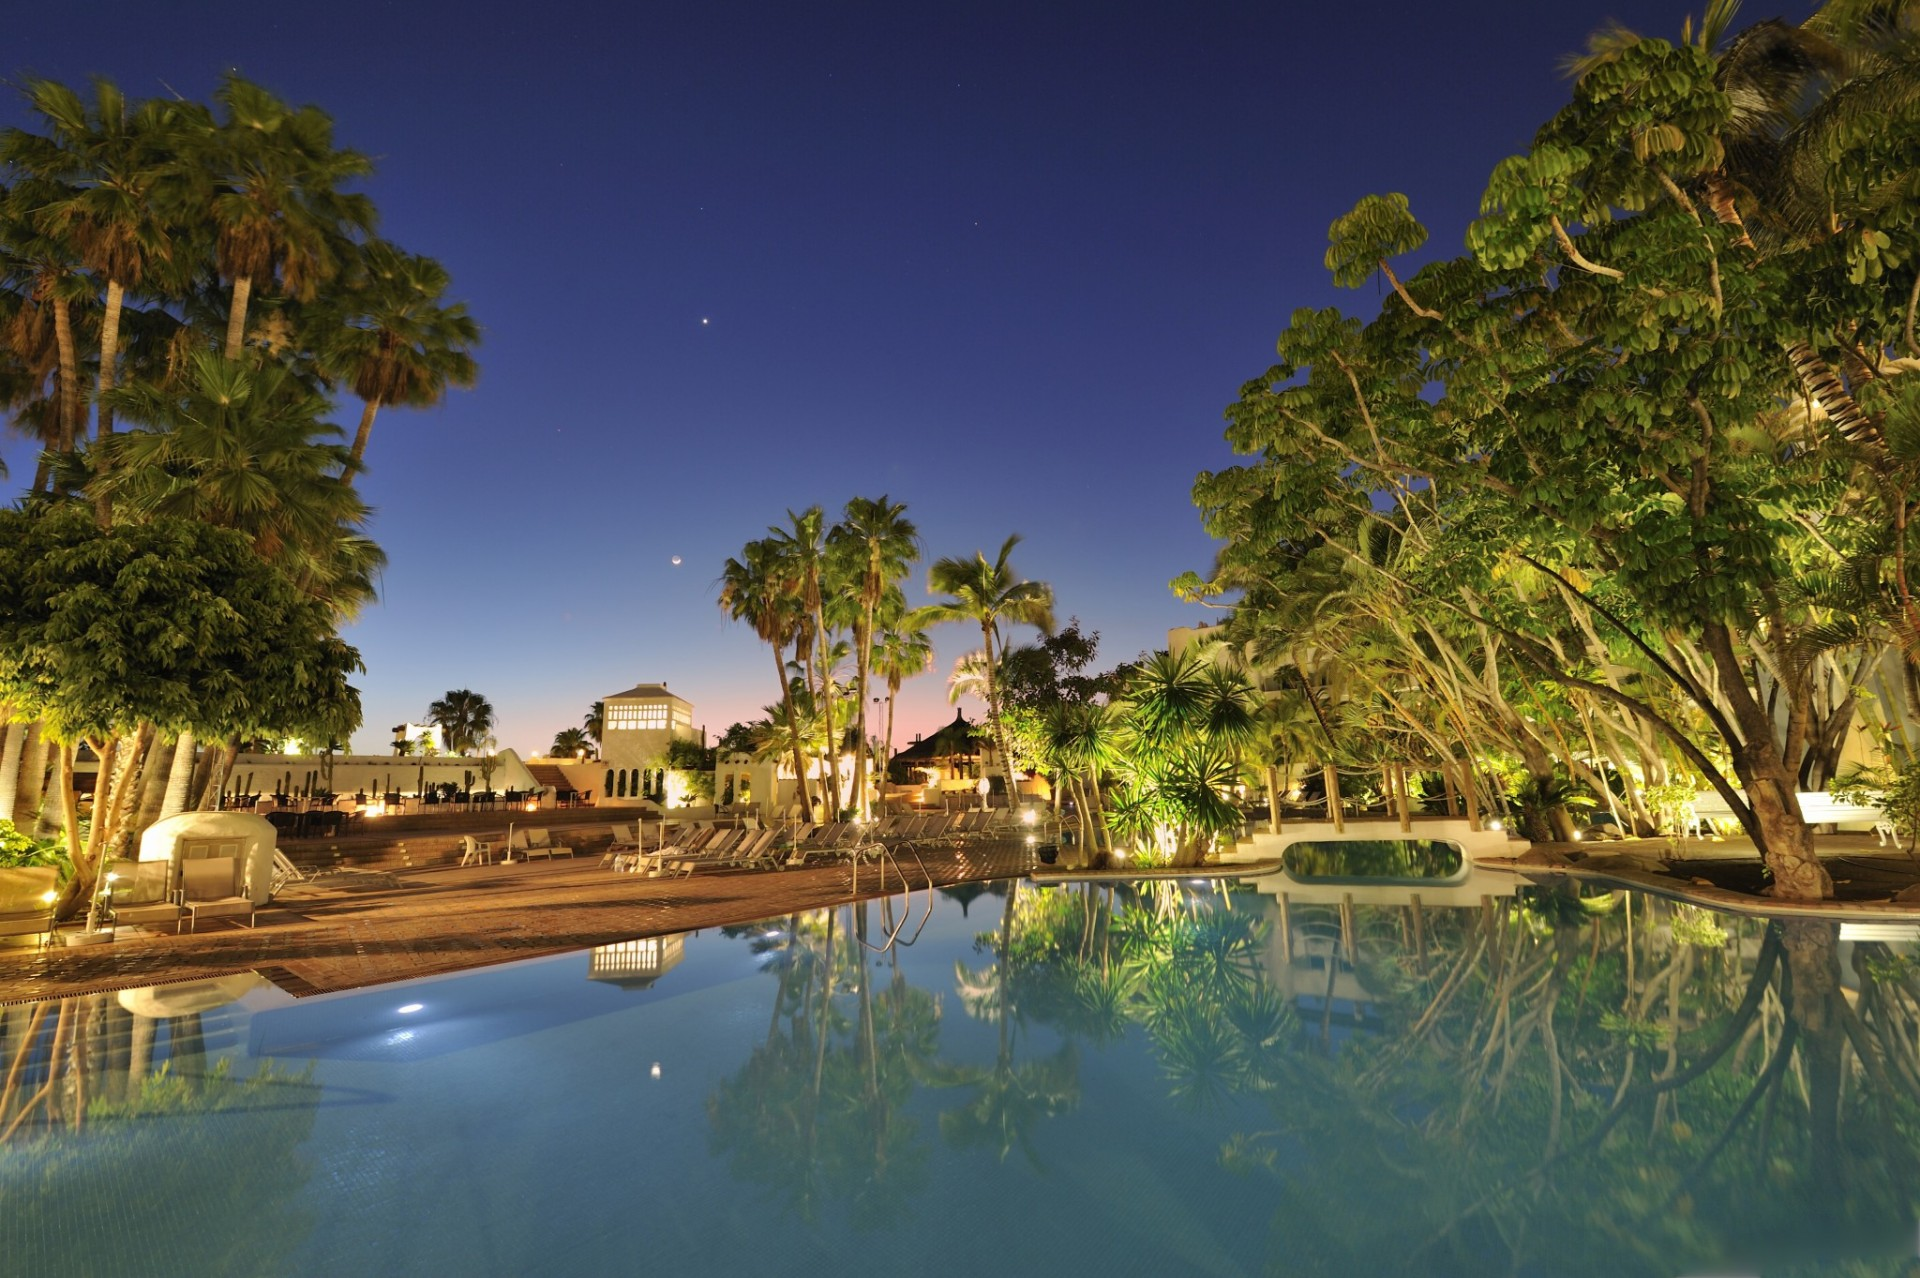 Puravida resort jardin tropical for Hotel puravida jardin tropical